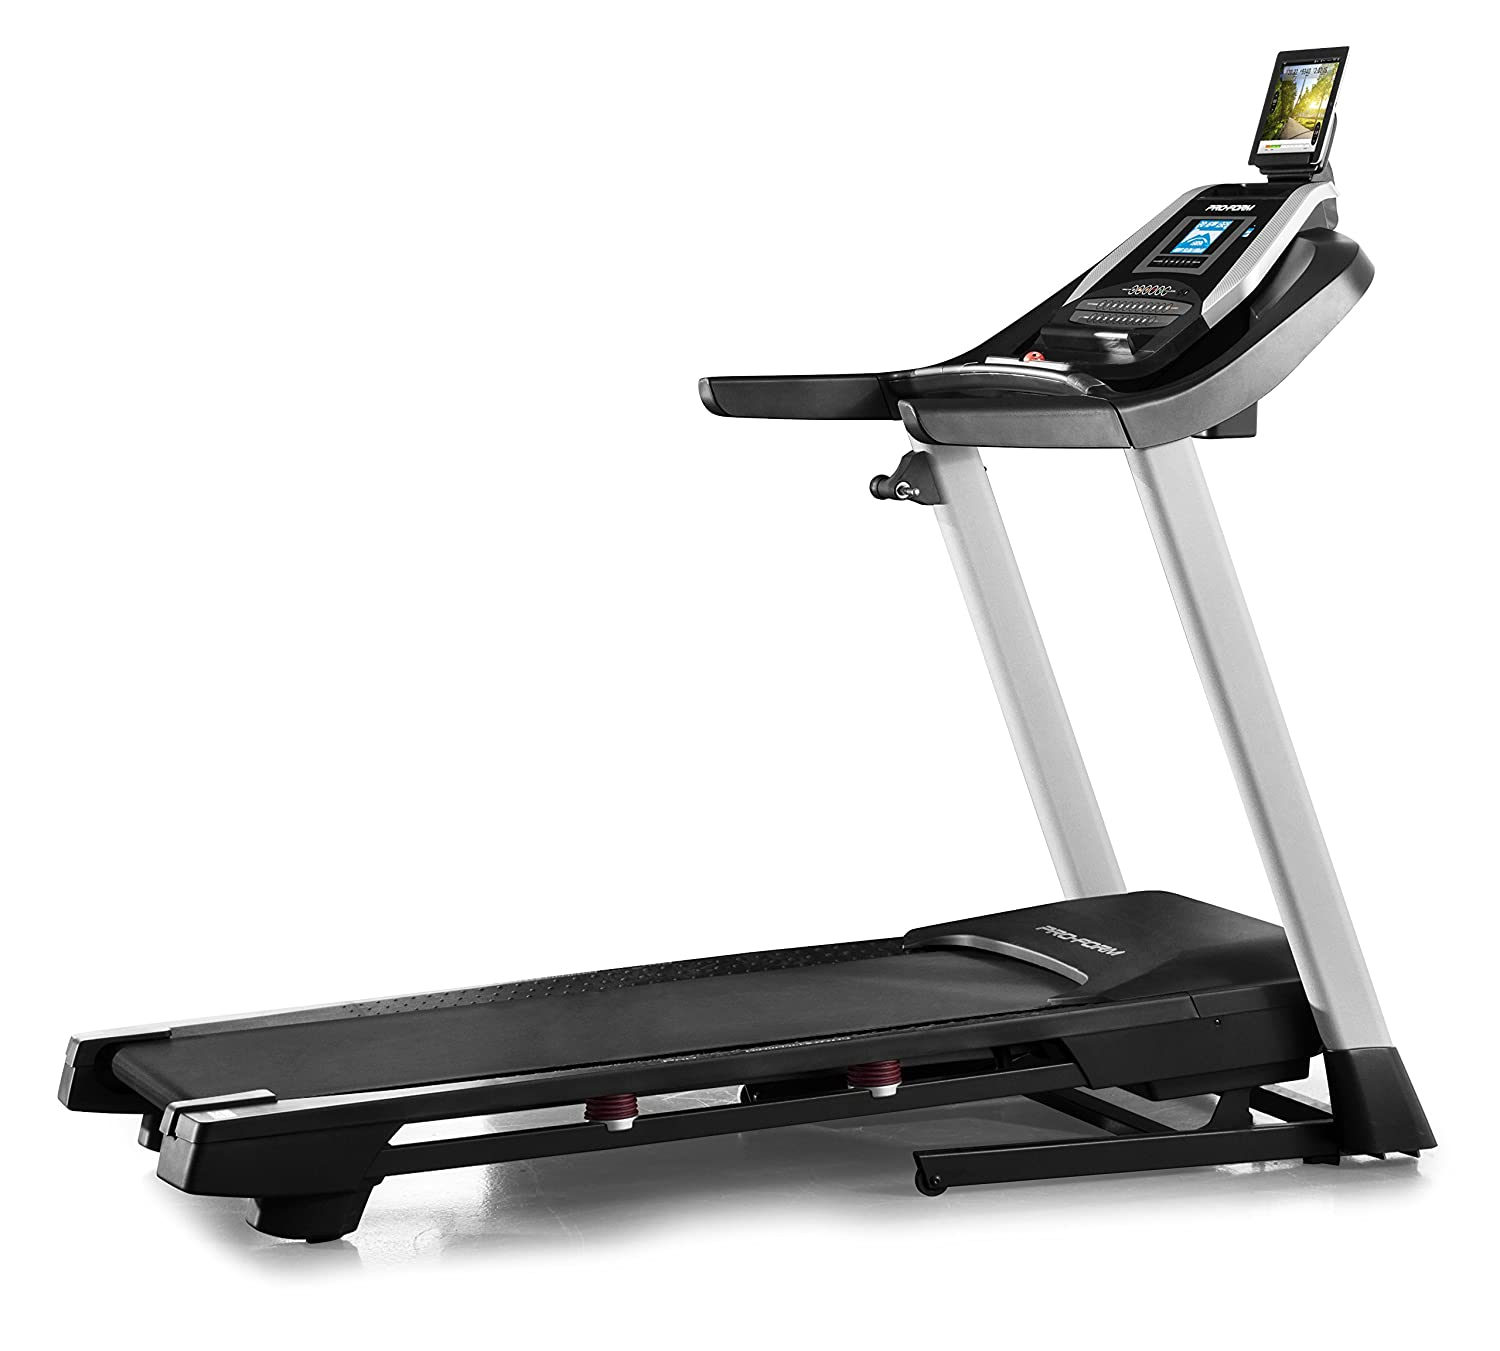 ProForm 505CST Treadmill 18 Workout Apps Exercise Fitness